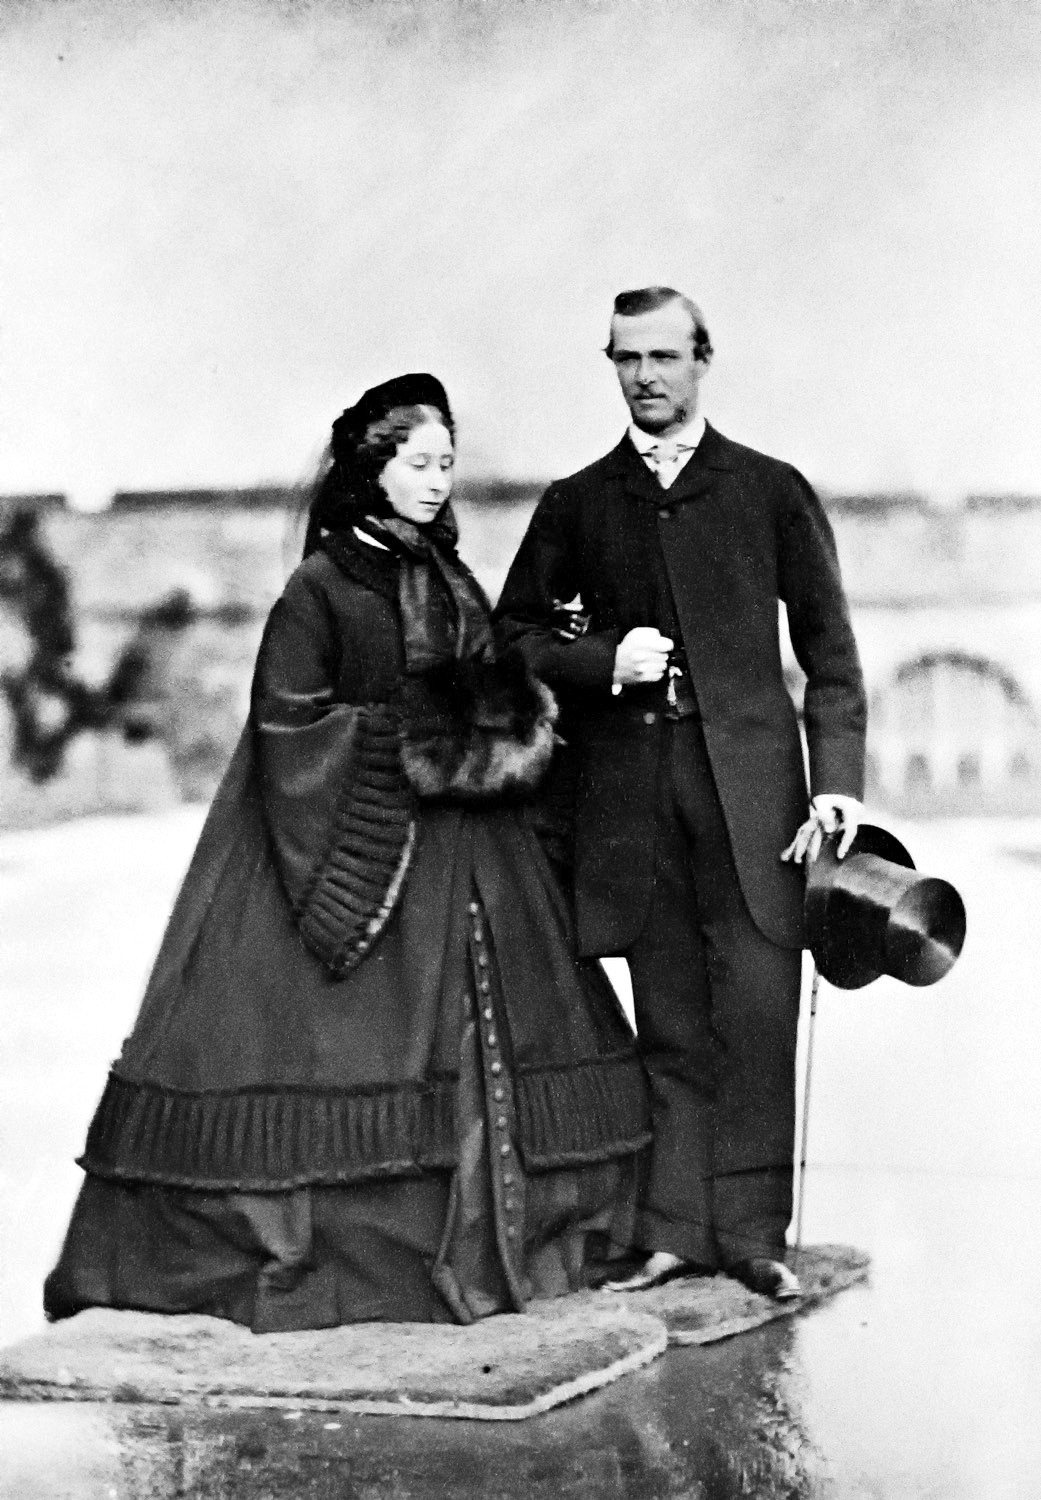 Princess Alice of the United Kingdom, with her fiancée Prince Louis of Hesse and by Rhine